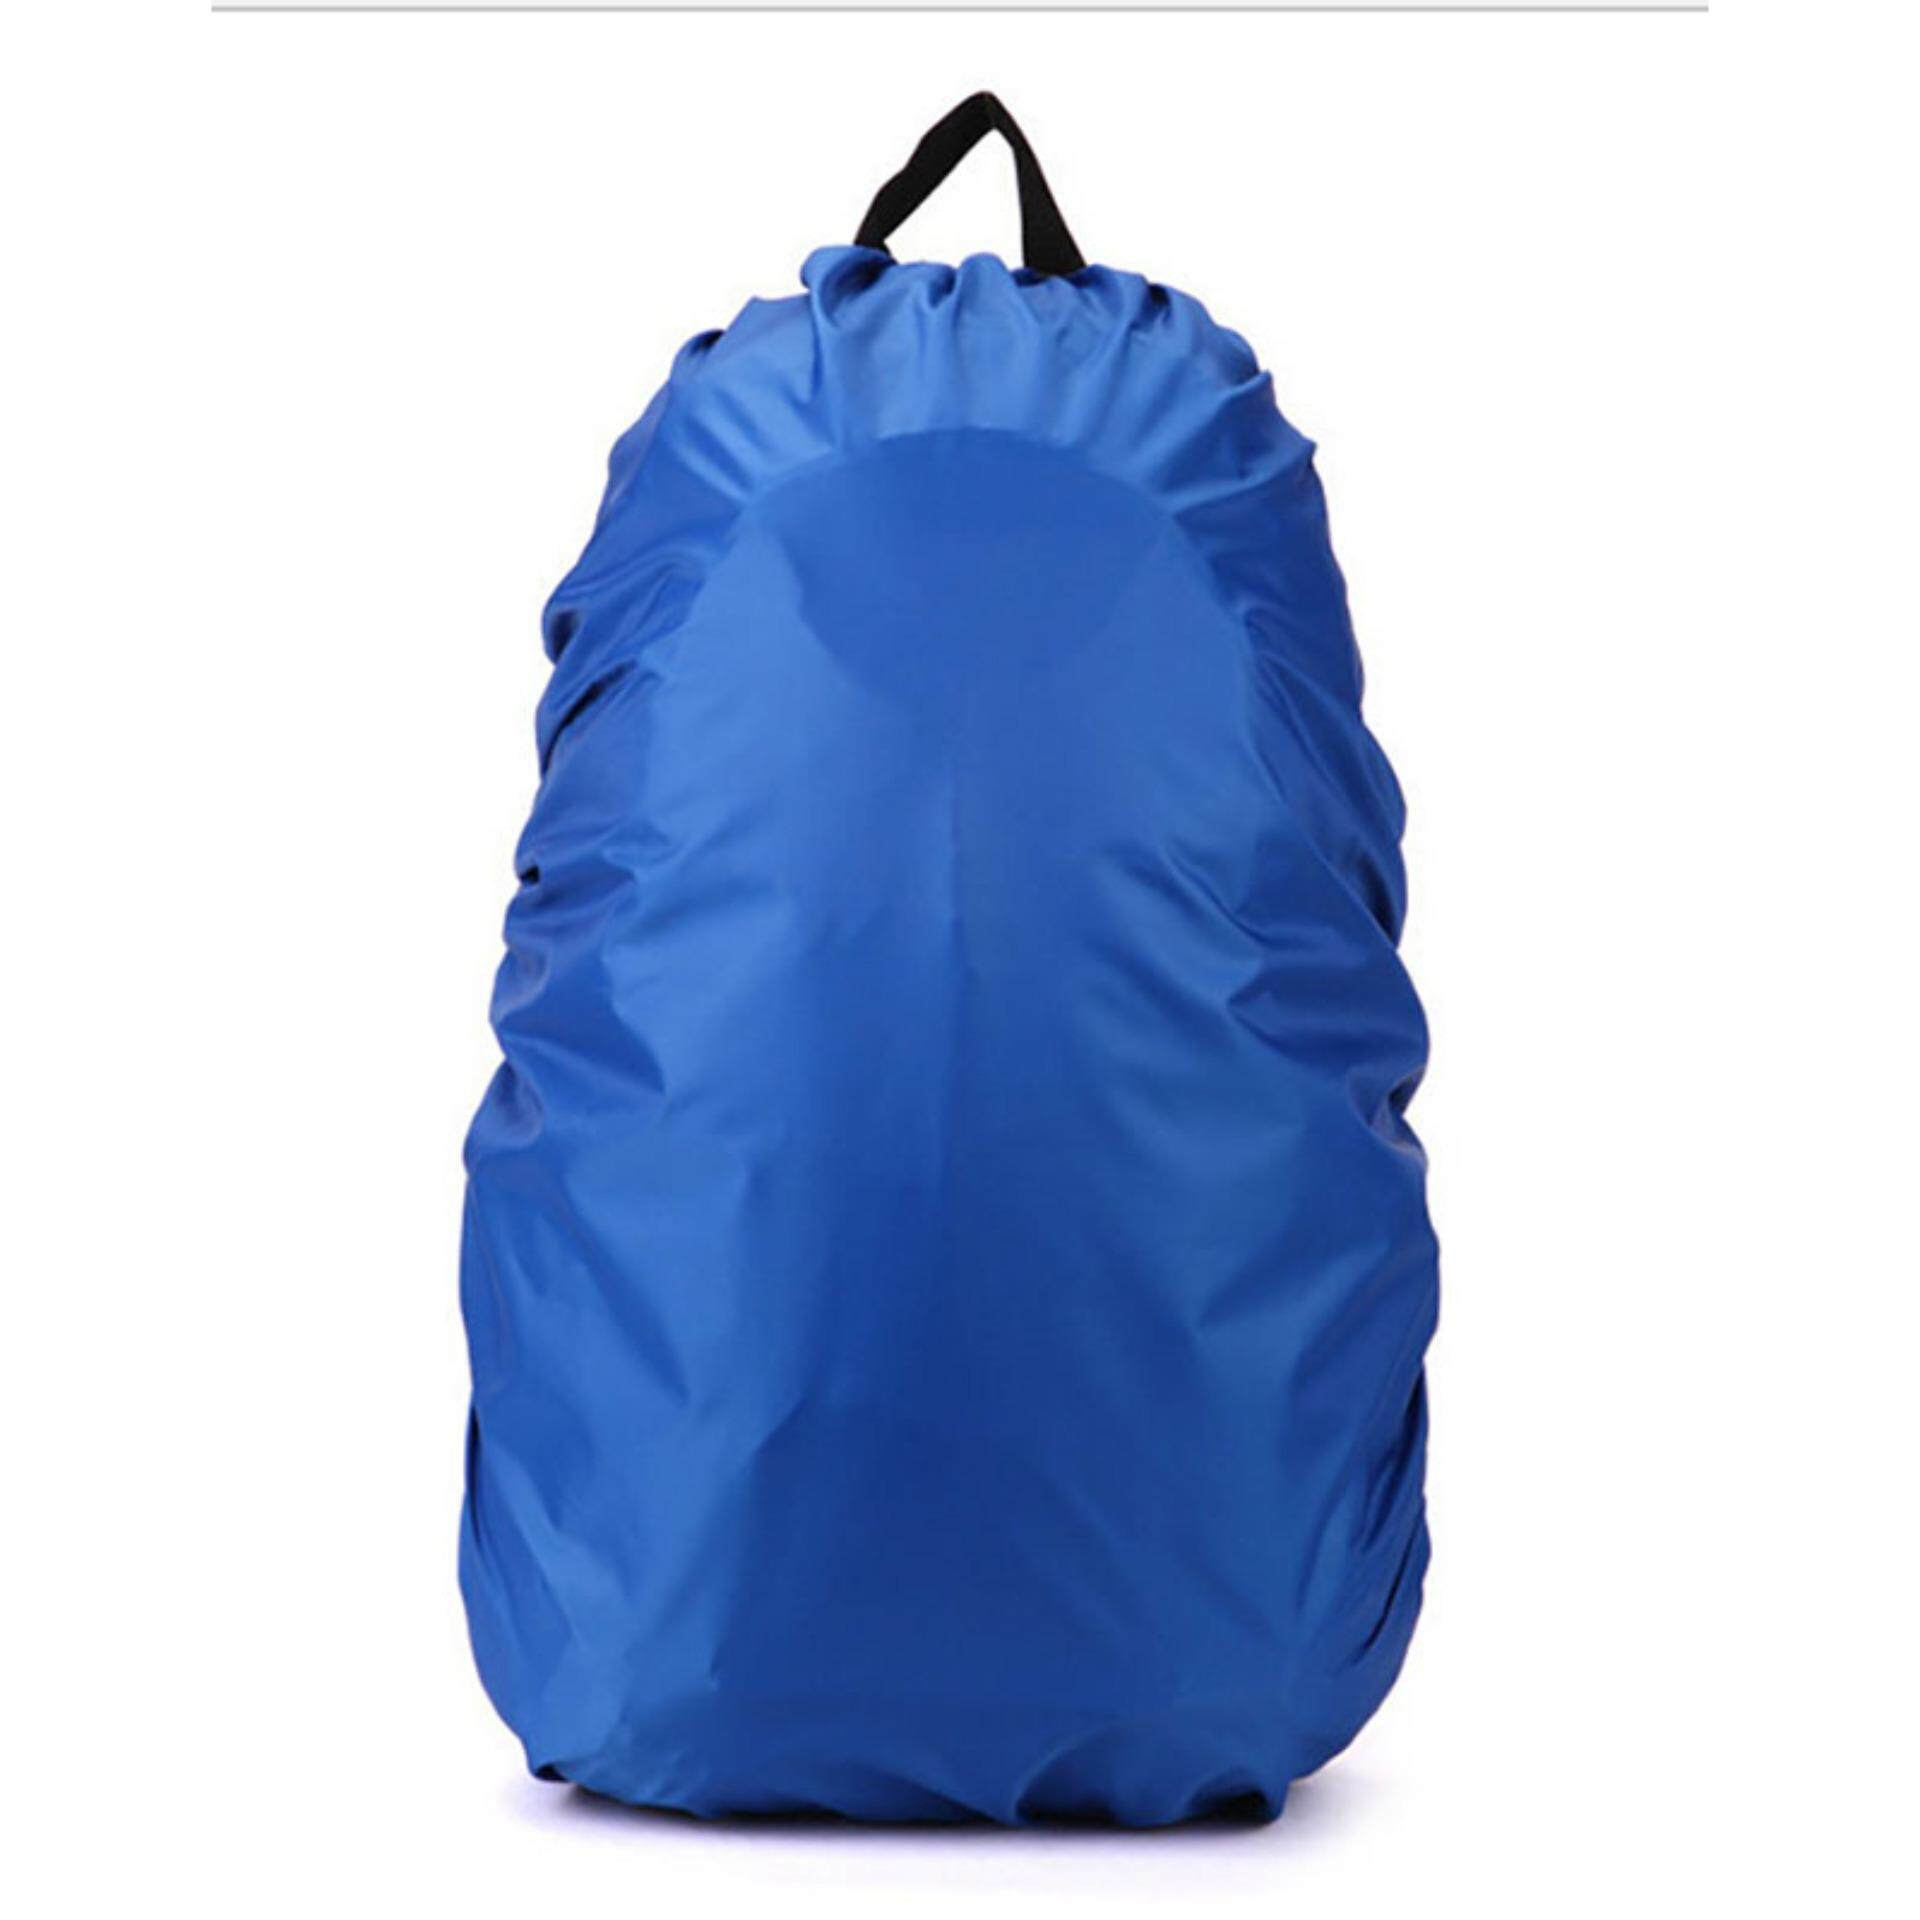 5 Colors Waterproof Rain Cover For 30L-50L Travel Backpack Laptop Bag Camera Bag